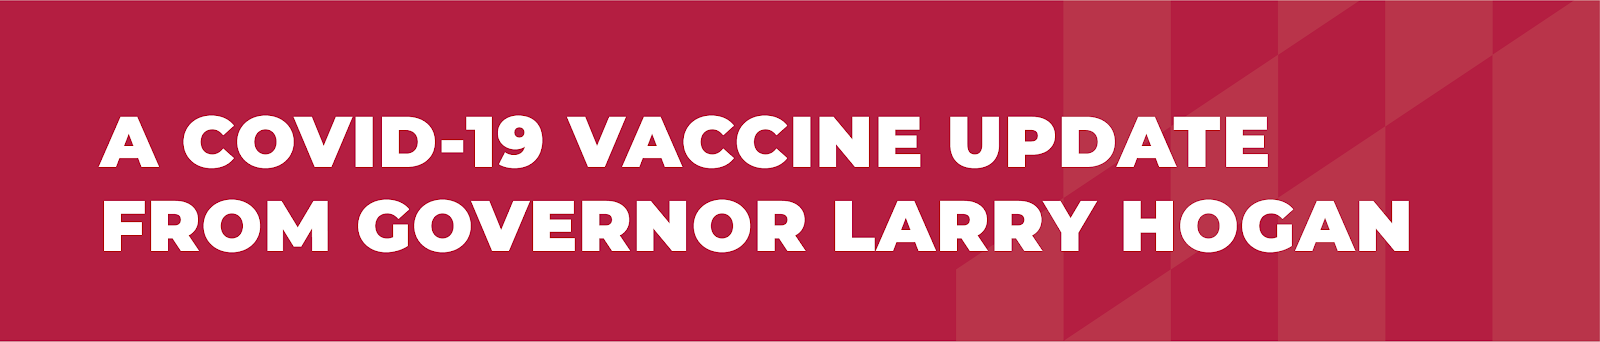 A COVID-19 Vaccine Update from Governor Larry Hogan